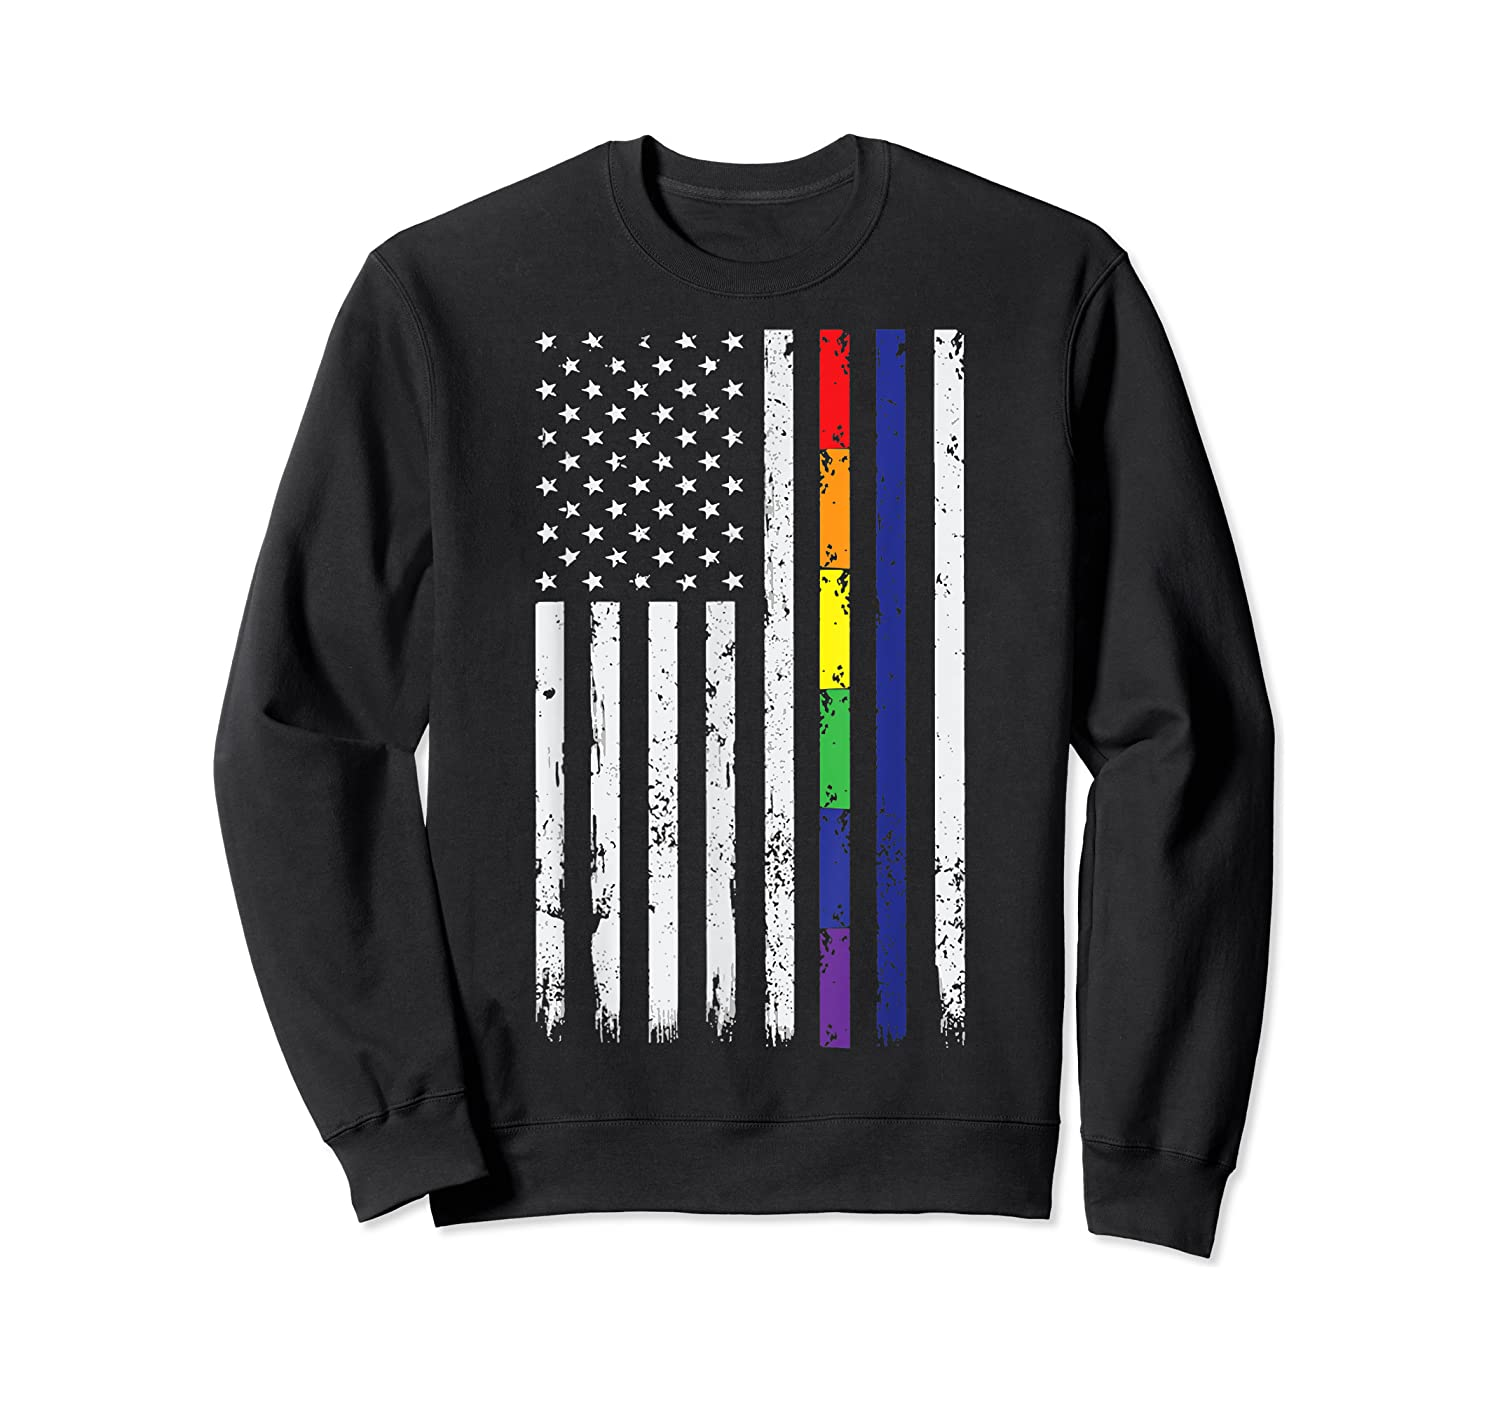 Police Support Lgbt Gay Pride Thin Red Line Rainbow Flag Fun T-shirt Crewneck Sweater